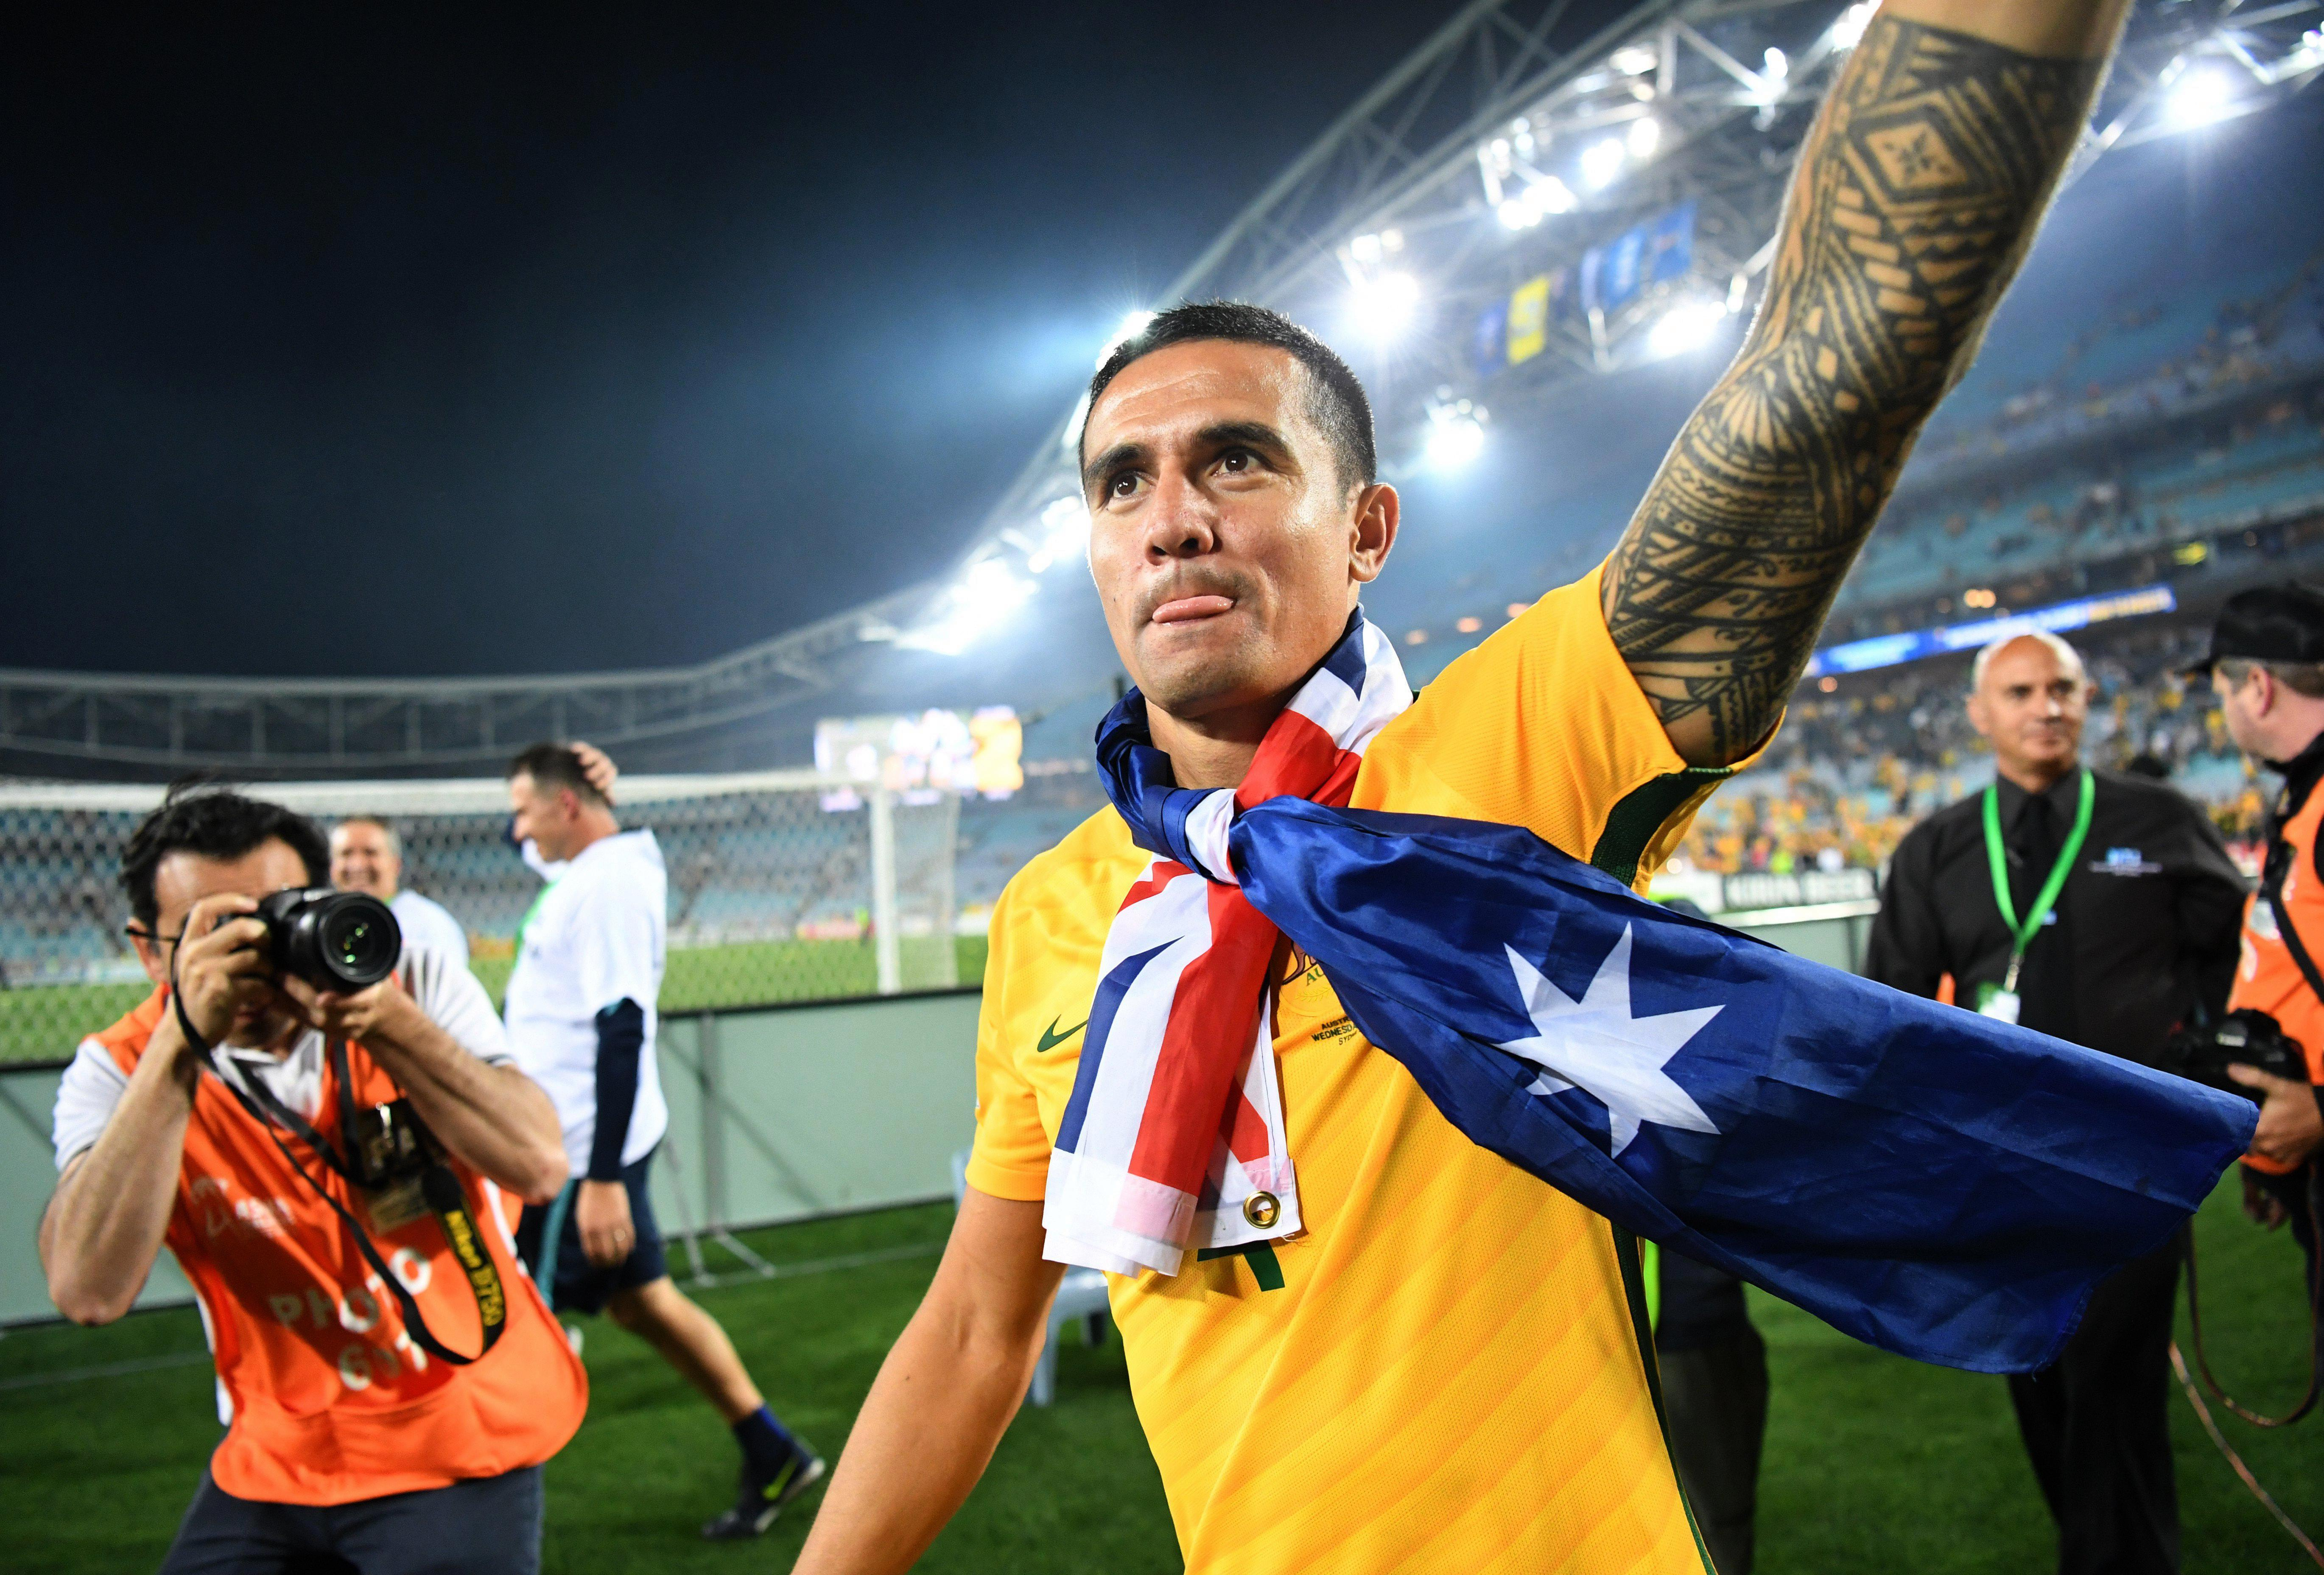 Millwall eyeing deal to bring legend Tim Cahill back as Australian star eyes regular game time ahead of World Cup